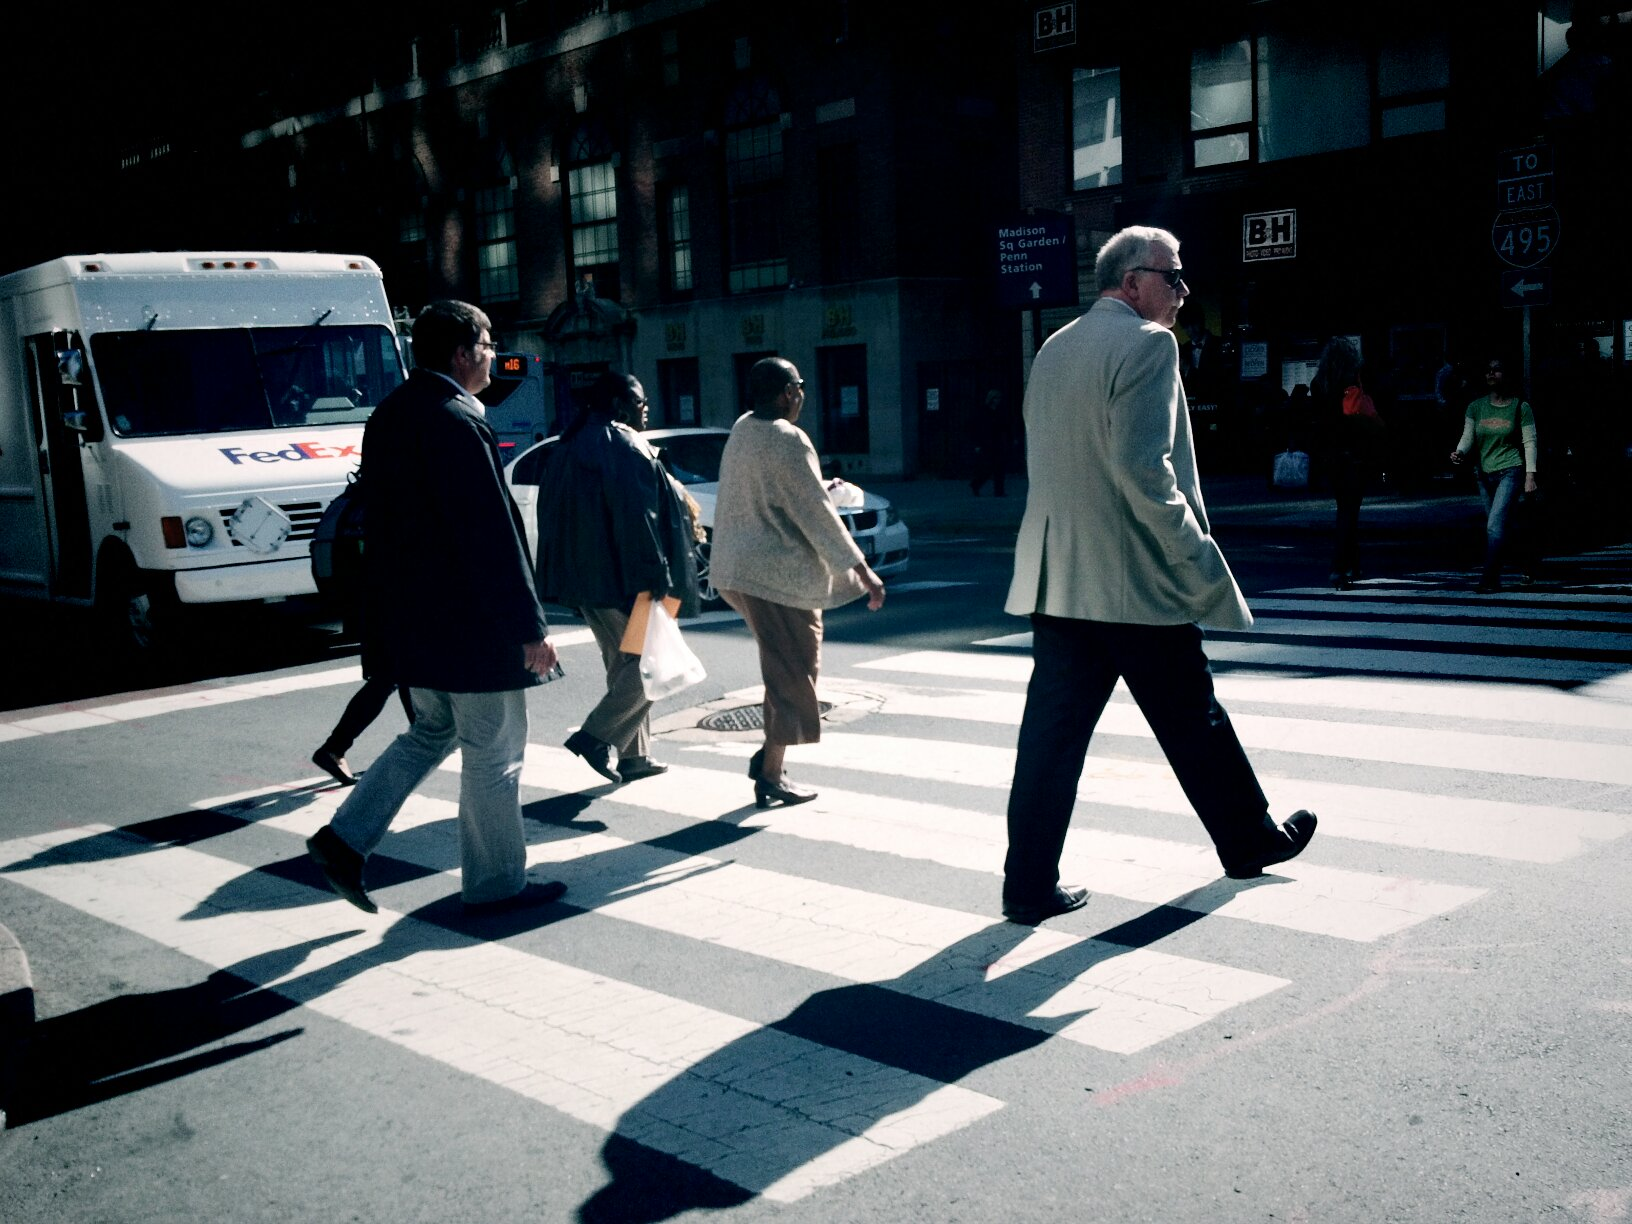 everyday people crossing at intersection in NYC